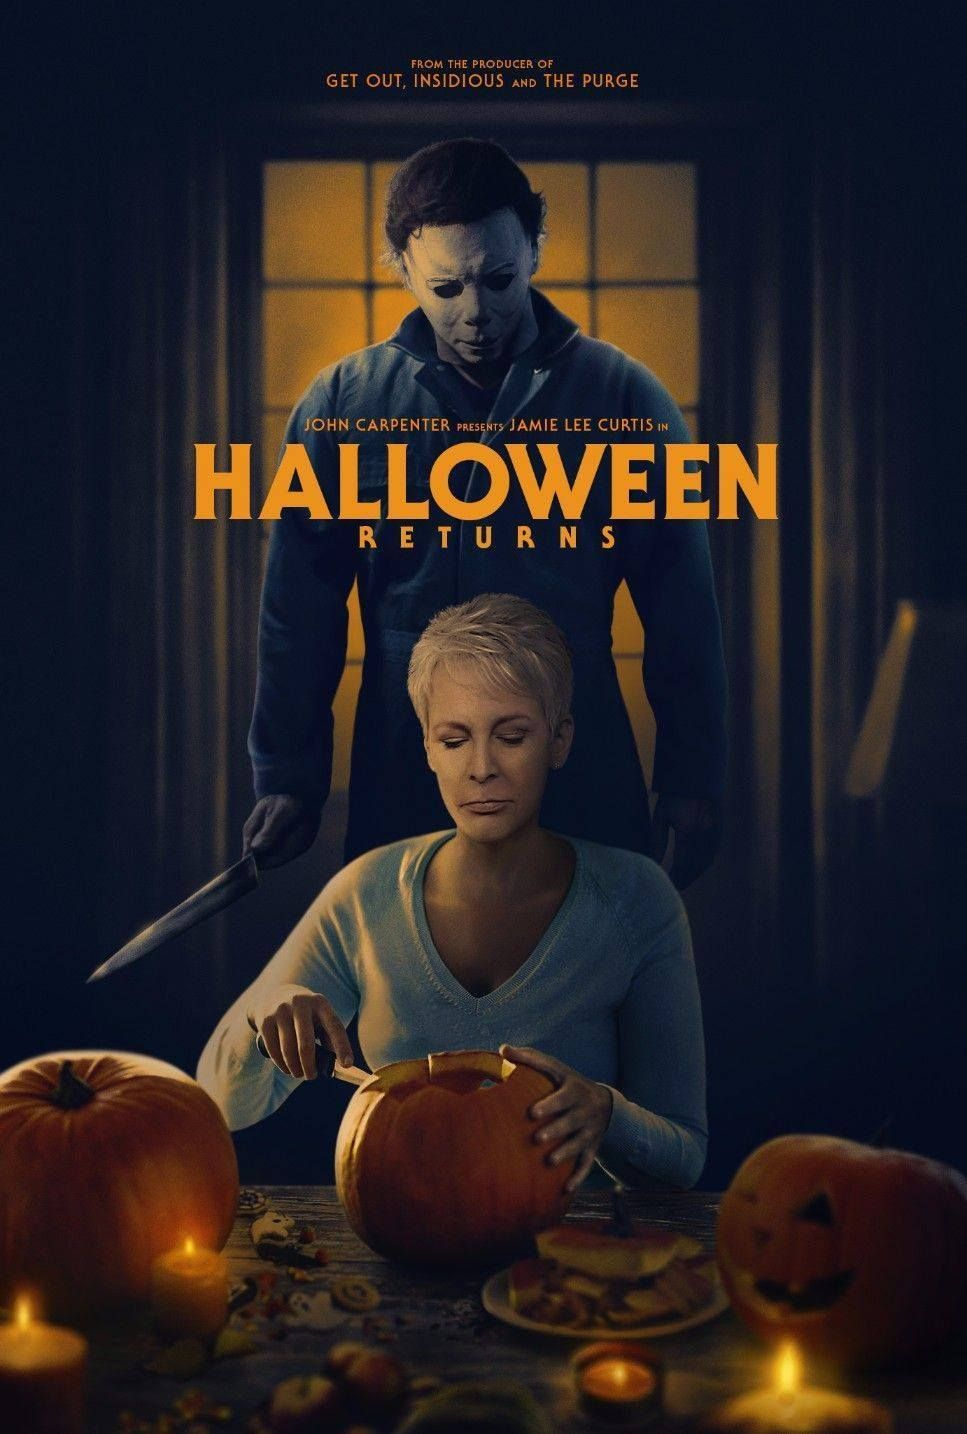 halloween 2018 967 x 1434 movieposterporn halloween movies movies horror. Black Bedroom Furniture Sets. Home Design Ideas